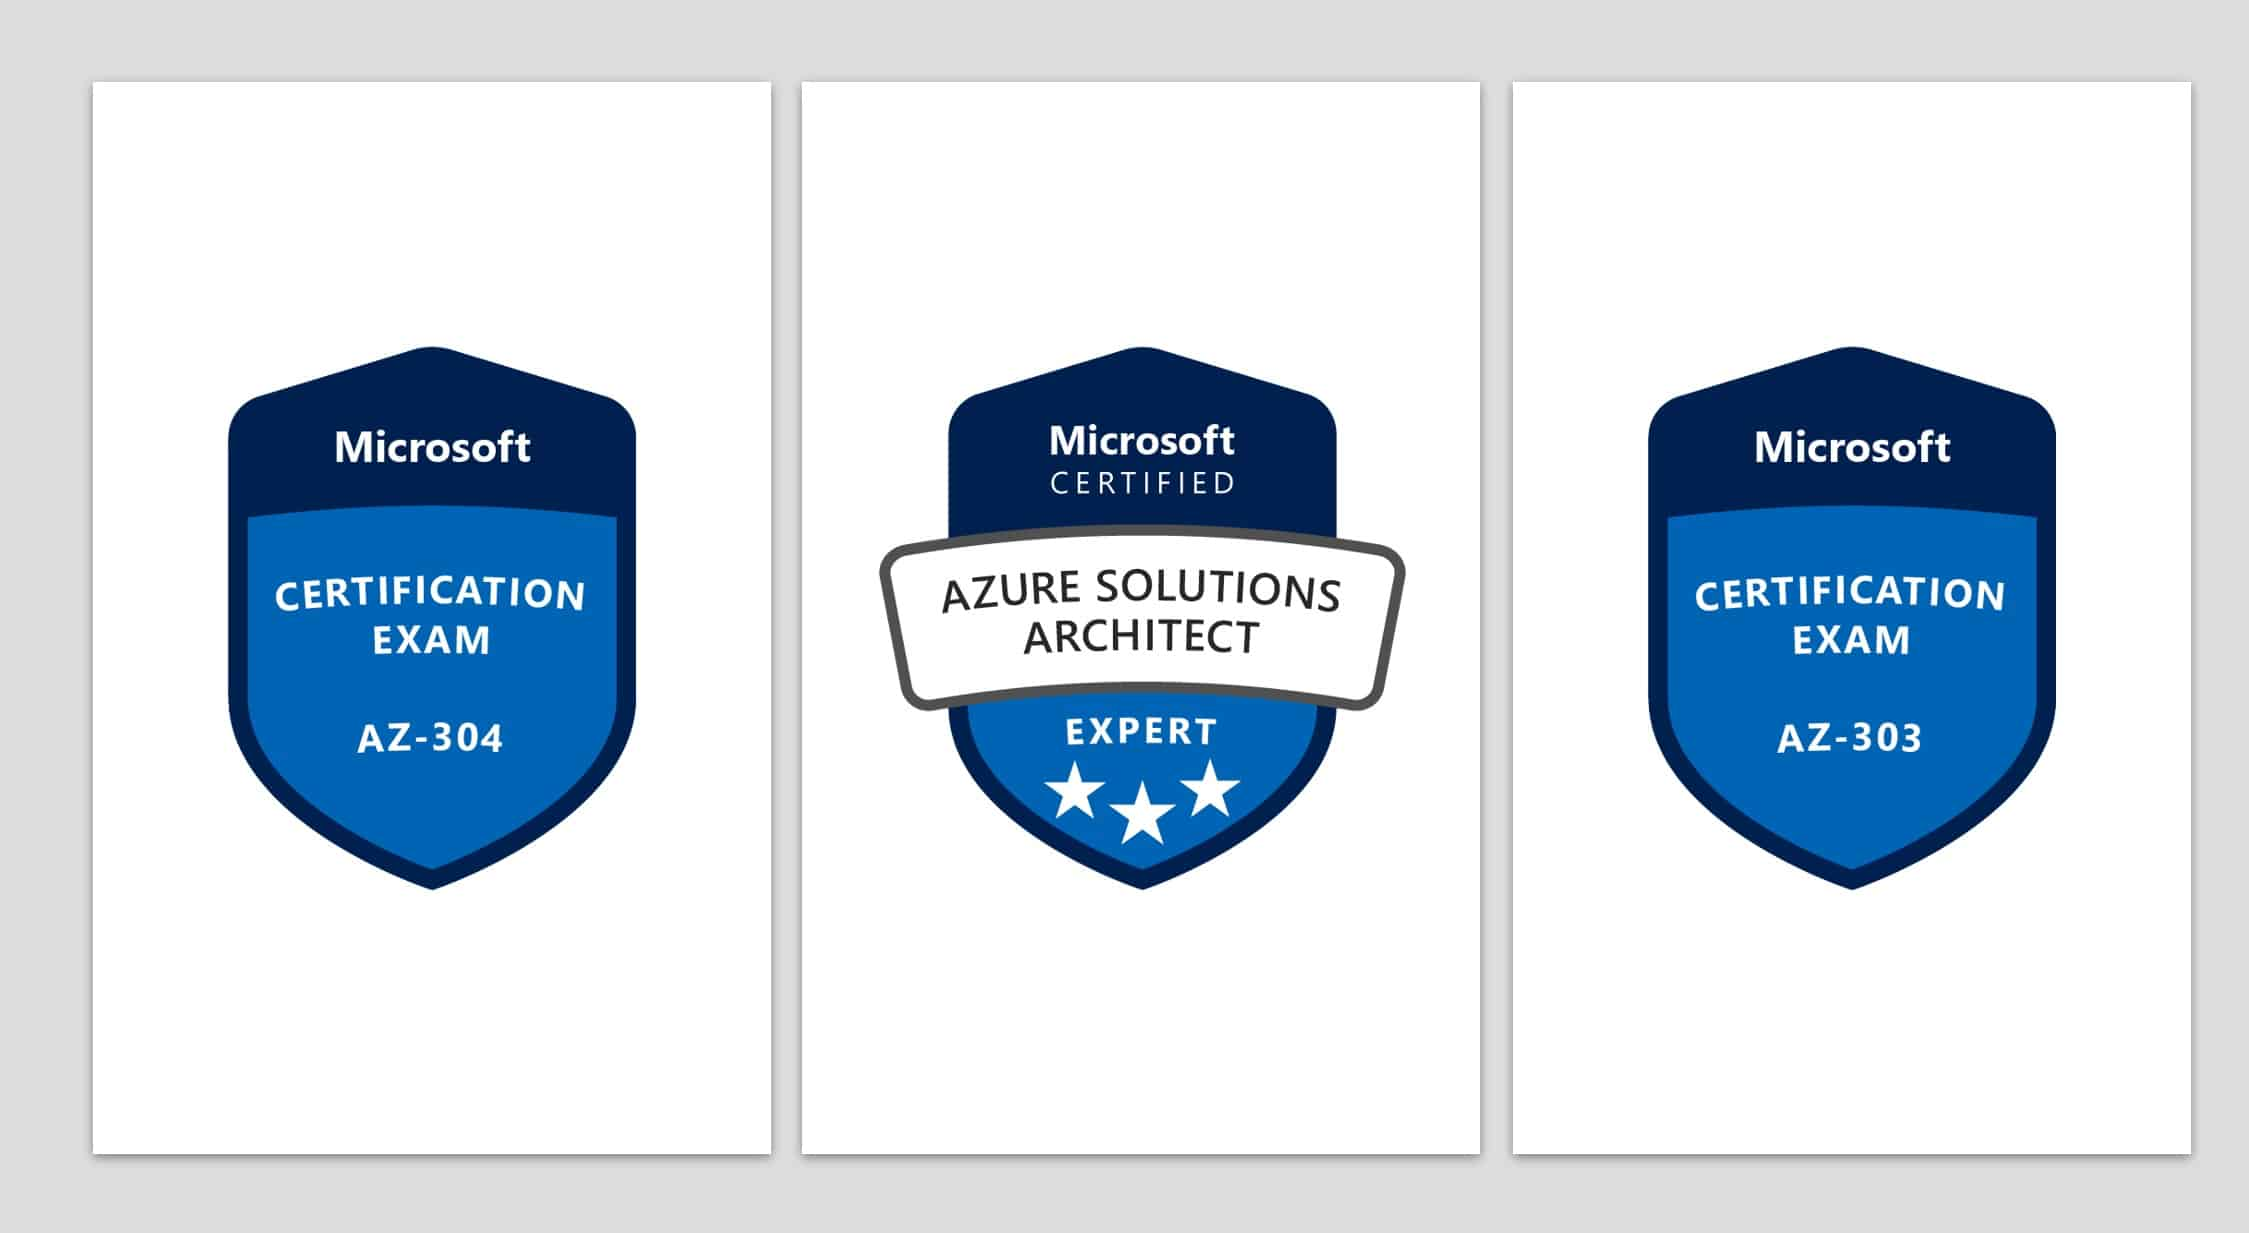 Passed AZ-303 and AZ-304 Microsoft Certified Azure Solutions Architect